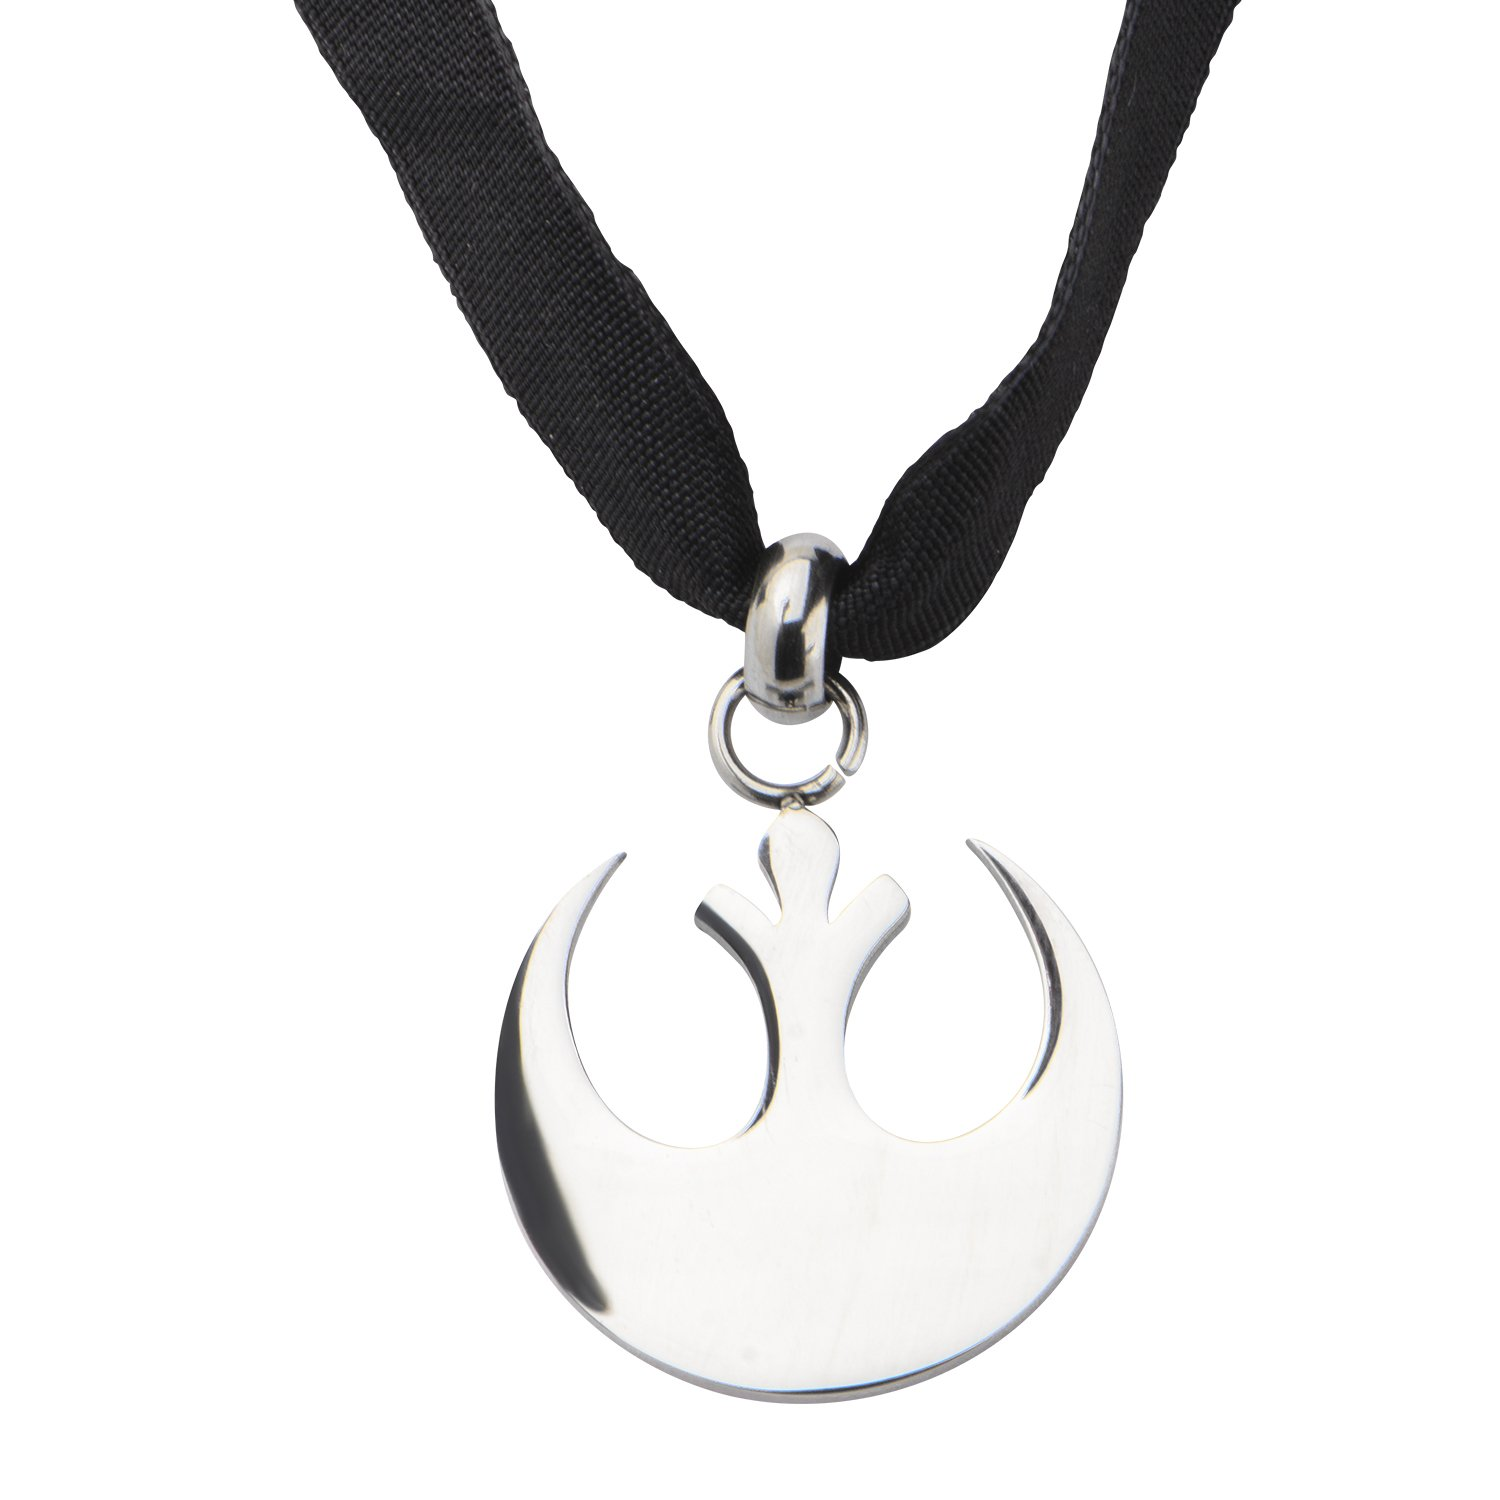 Star Wars Jewelry Women's Stainless Steel Small Cut Out Rebel Symbol Velvet Choker Necklace, Silver/Black, One Size